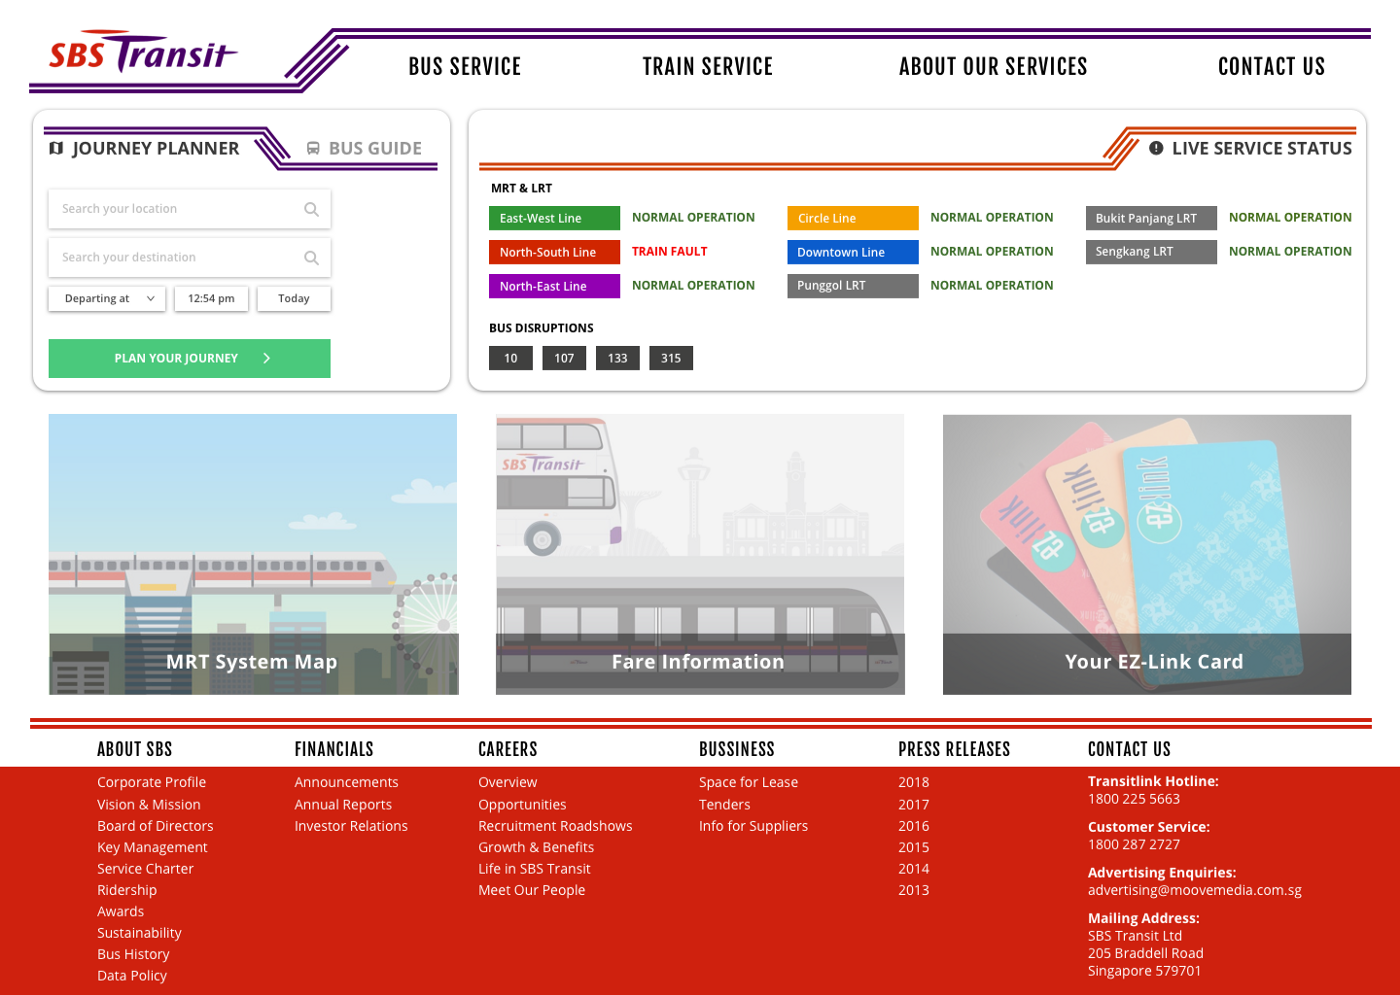 UX Lessons in Revamping the SBS Transit Website - UX Planet